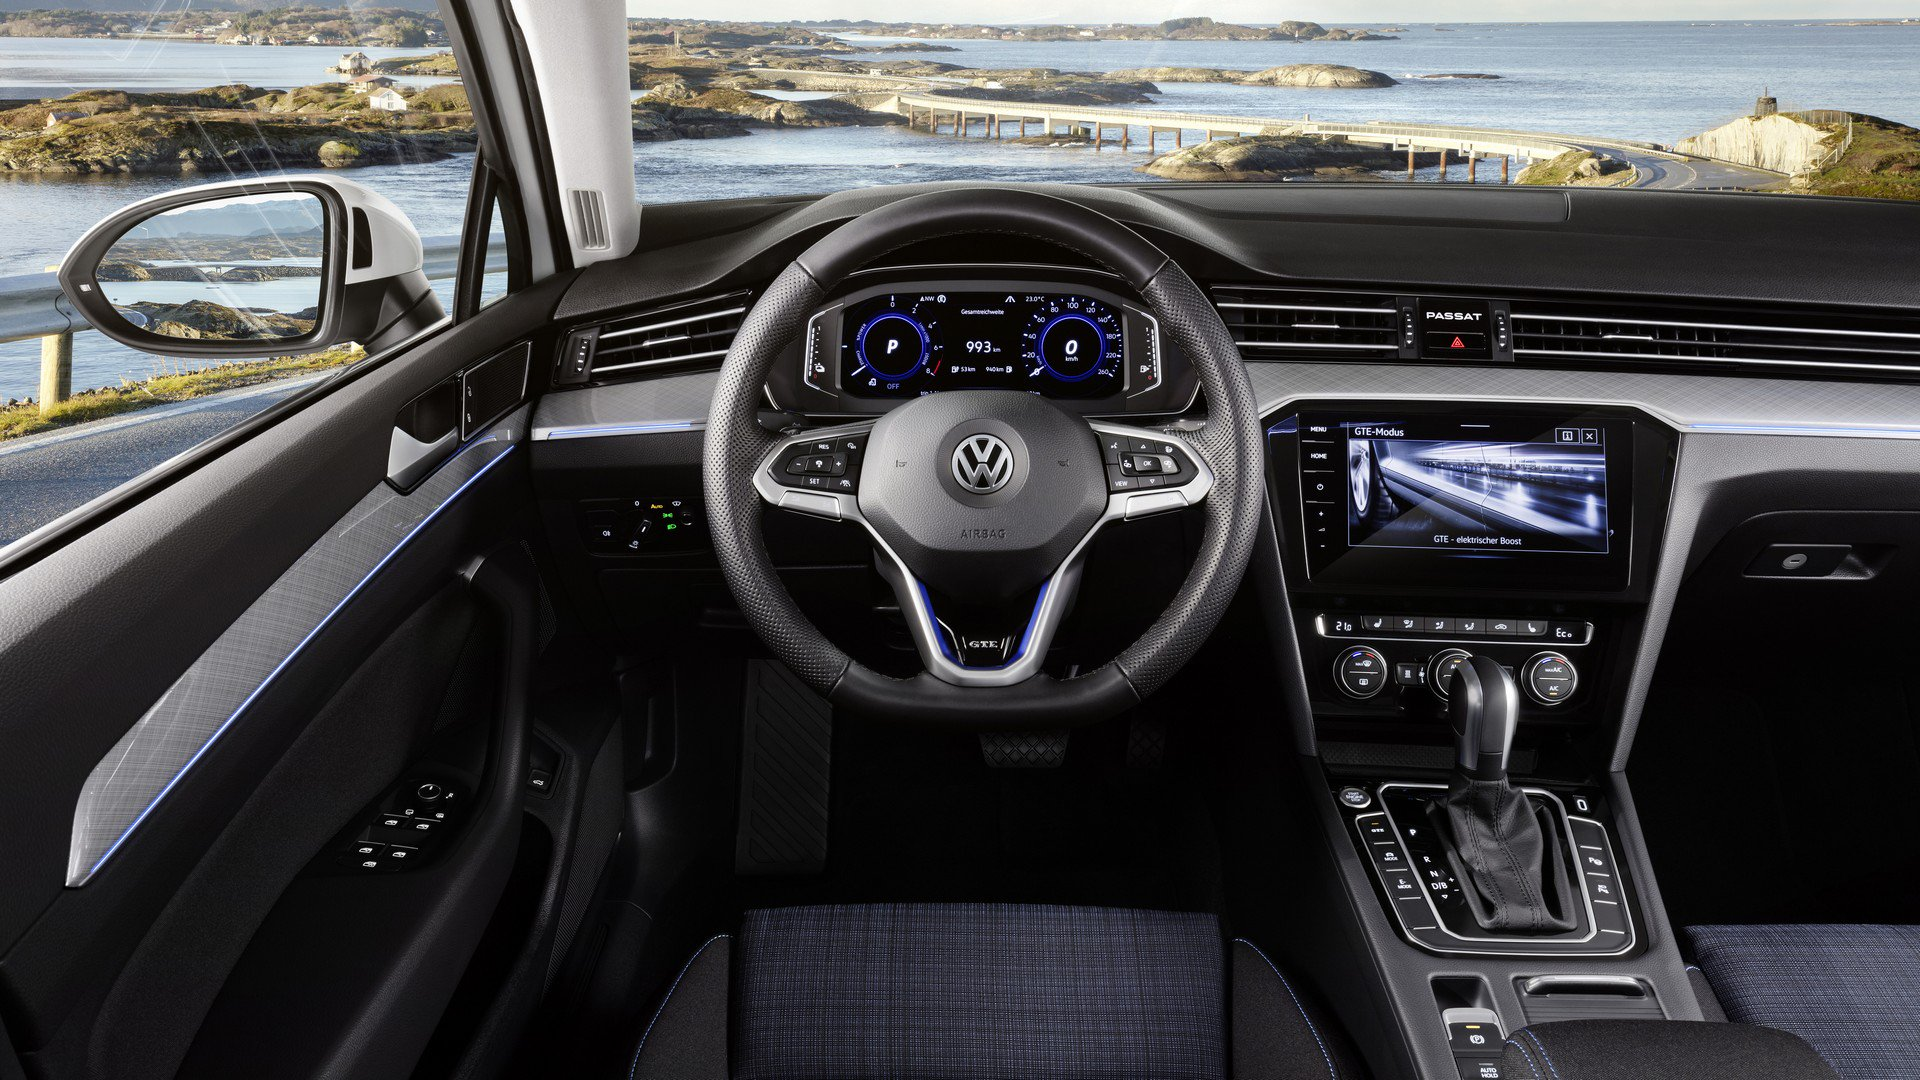 2020 Volkswagen Passat Facelift Adds Partially Automated